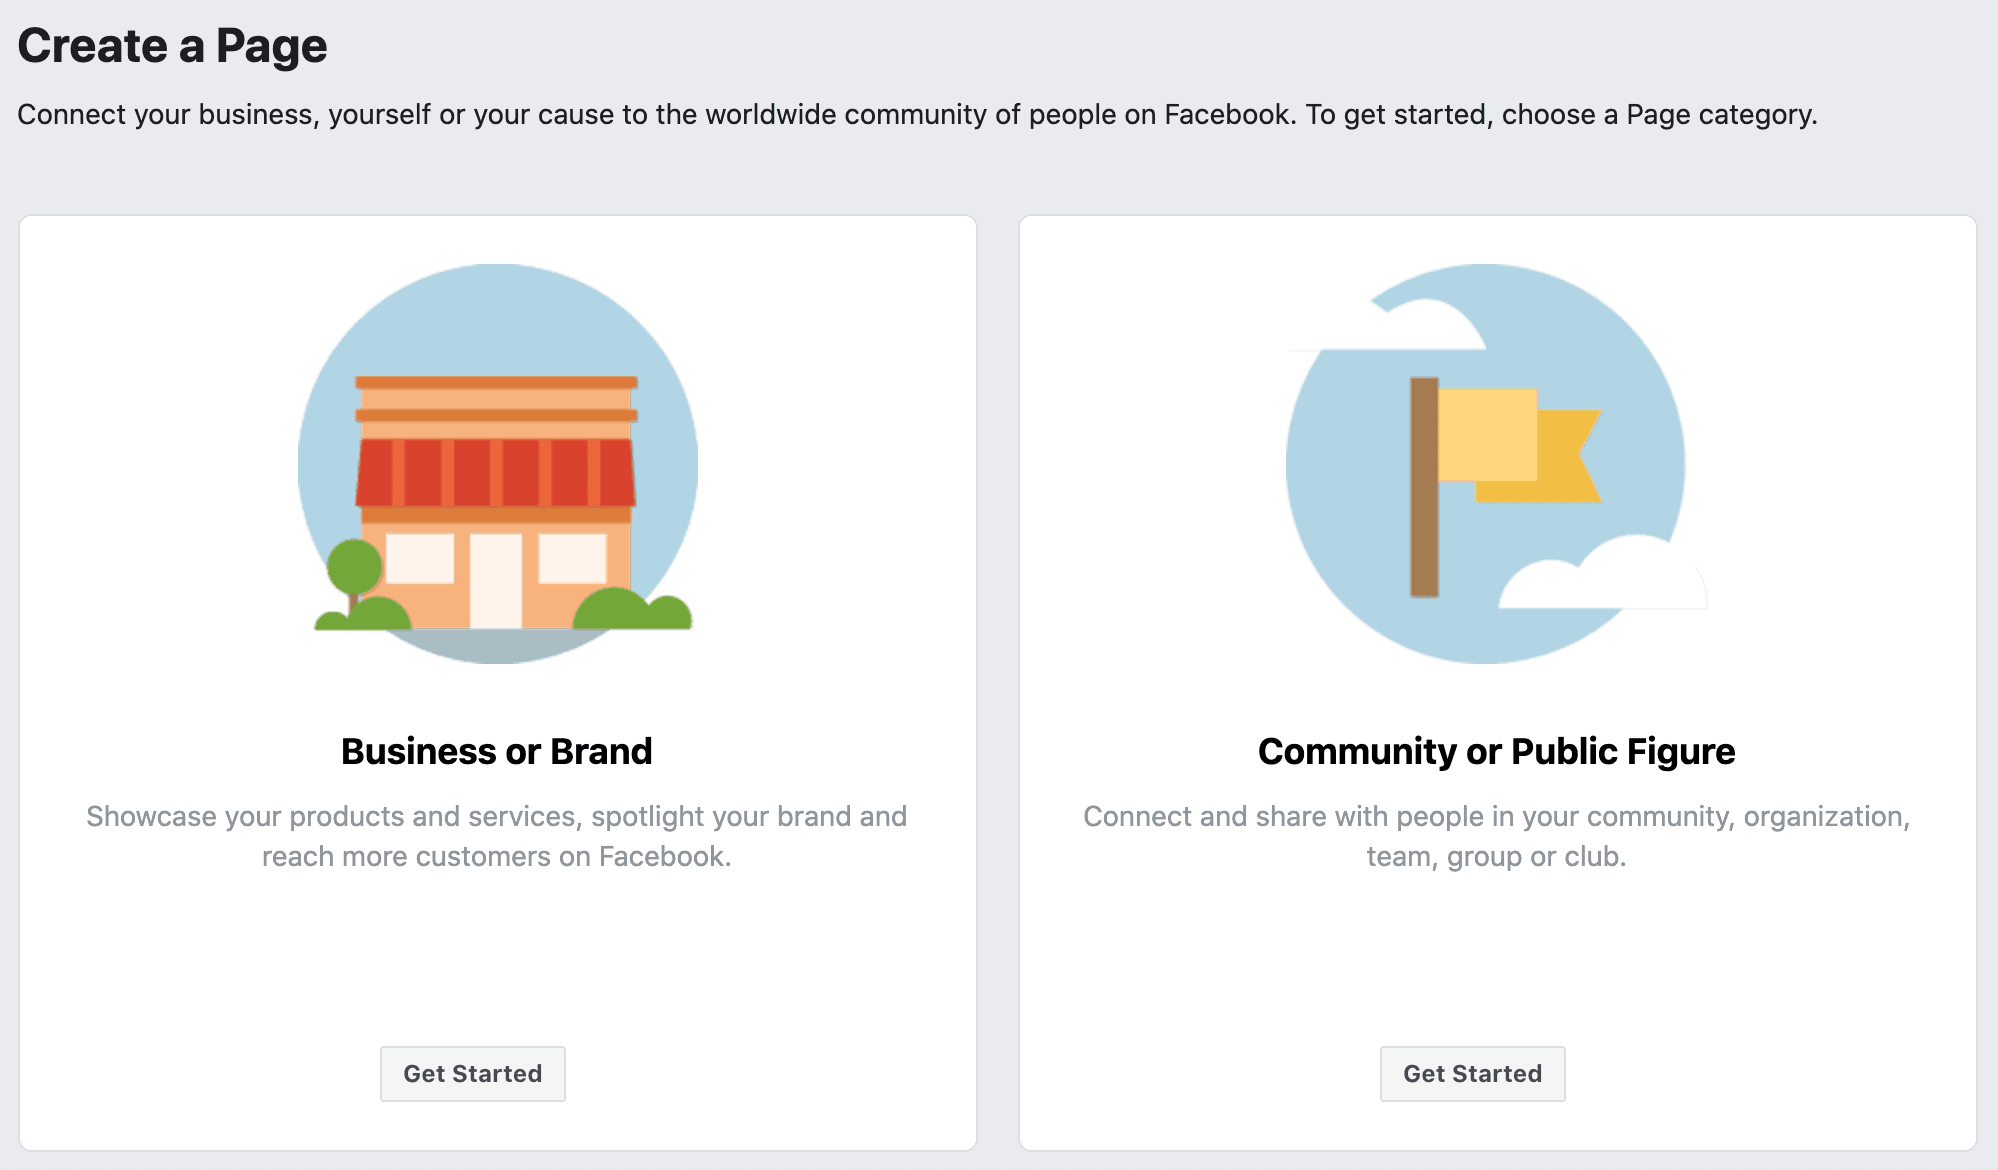 Facebook: Start creating a page for your business